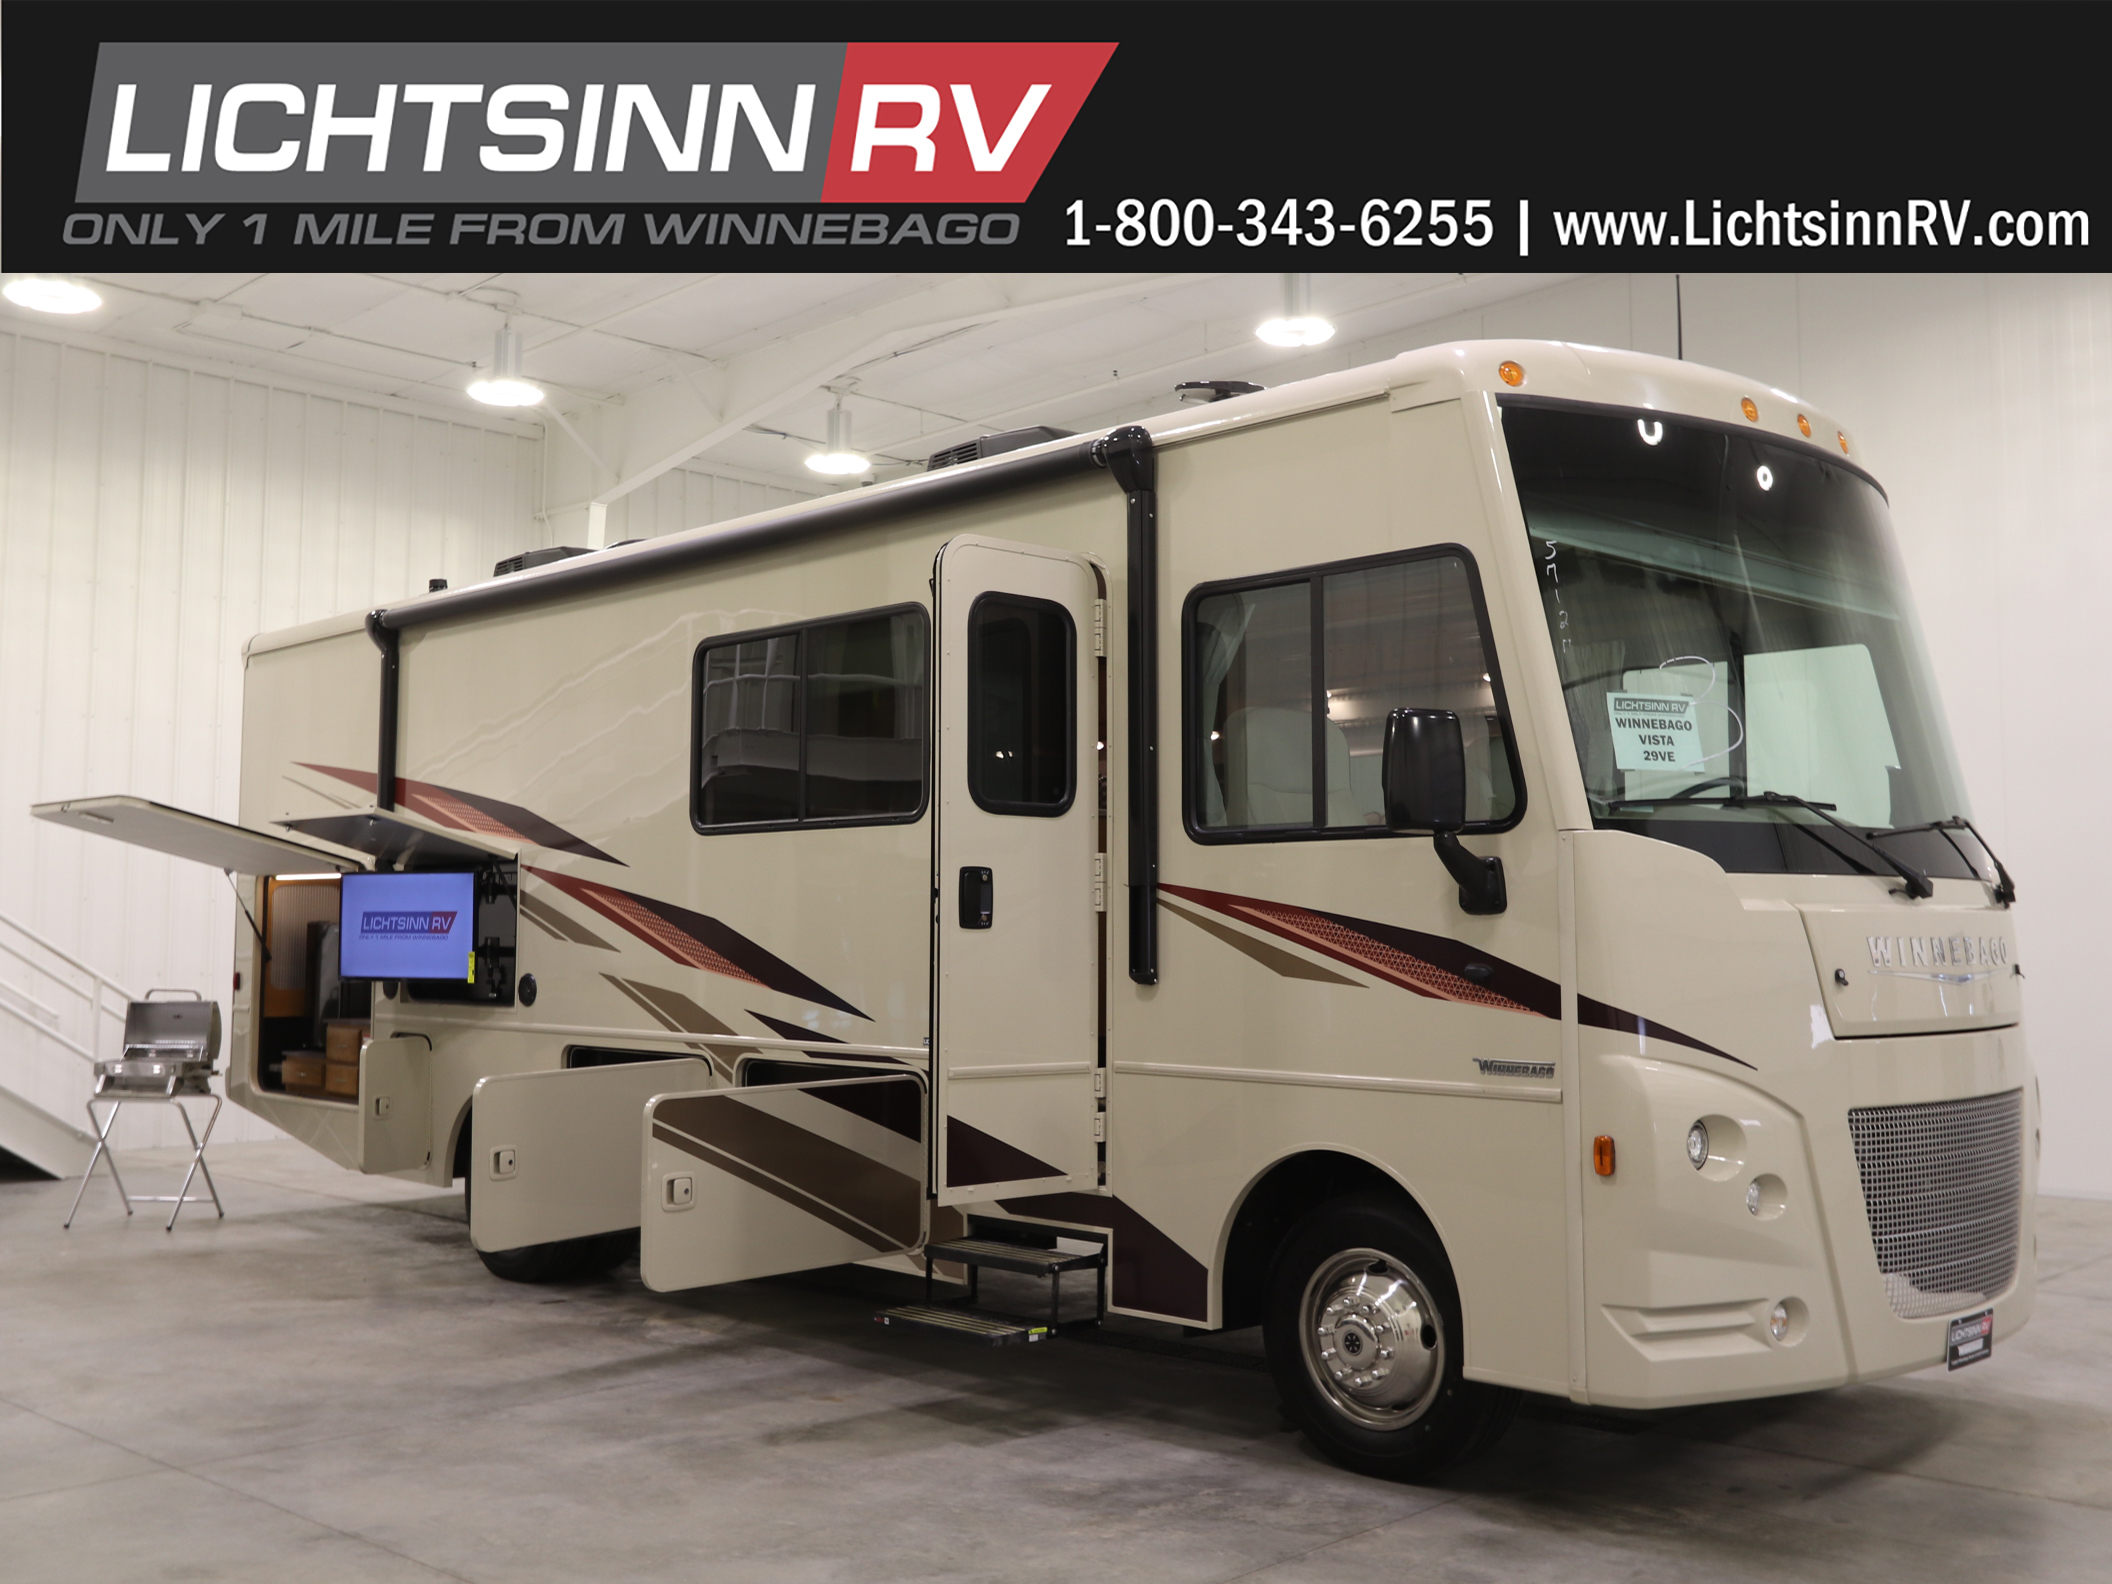 New Model Year Changes In The Vista And Sunstar 29ve Lichtsinn Rv Blog Winnebago Ac Wiring Looking For A Big Coach With Value Built To Winnebagos Uncompromising Standards Look No Further Than